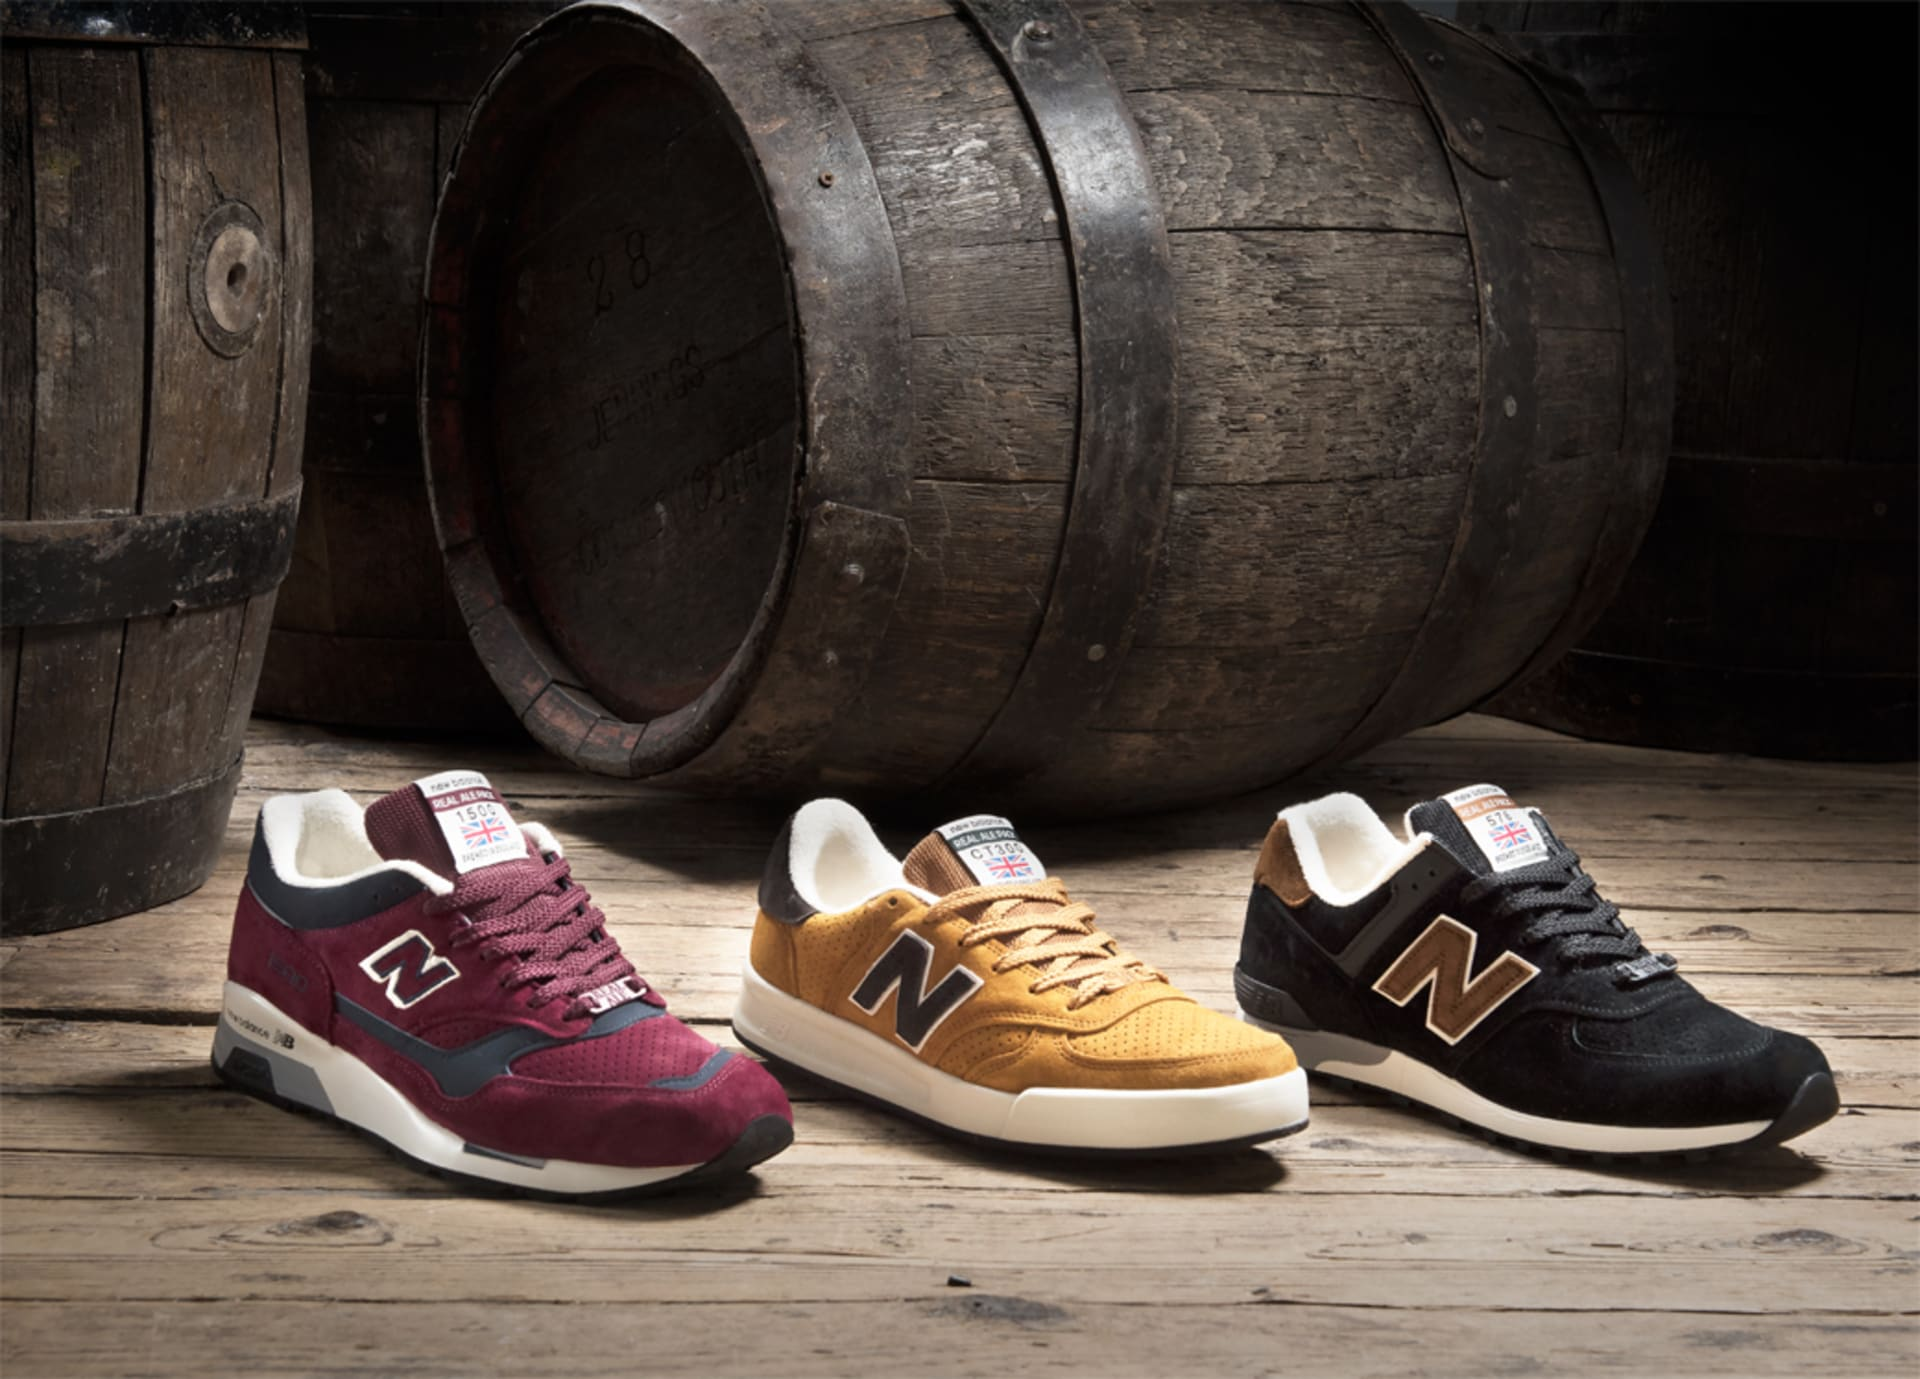 """a71c0856c72b New Balance """"Real Ale"""" Pack Turns Craft Beer Into Lust-Worthy ..."""